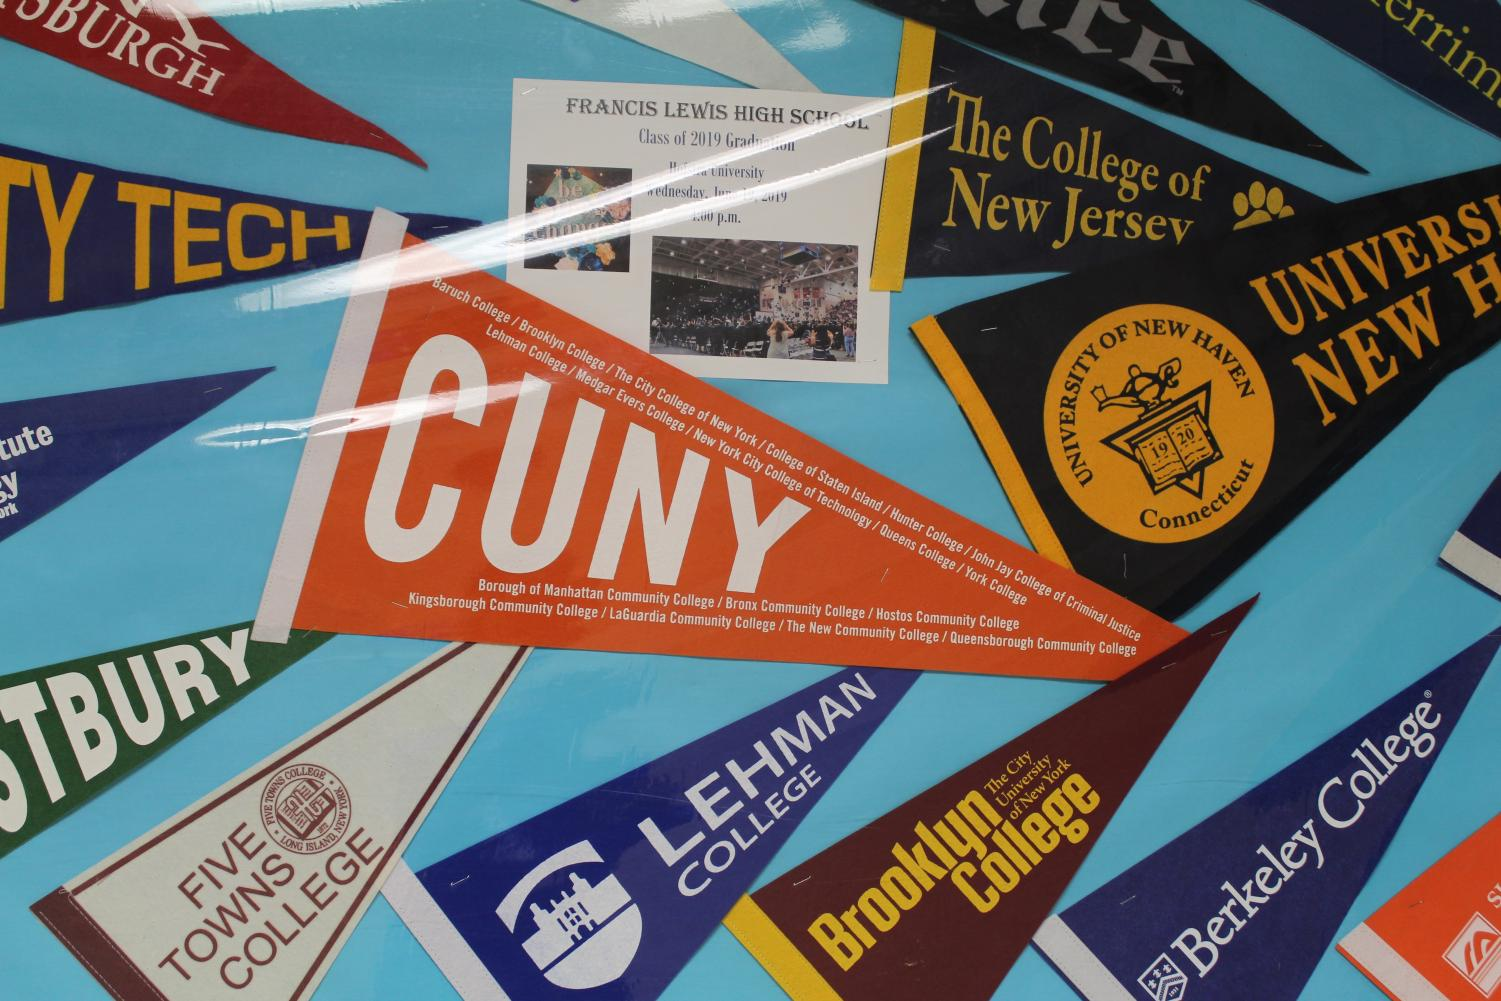 Lehman, Brooklyn, and Berkeley are one of the few colleges seniors are applying to go to college.